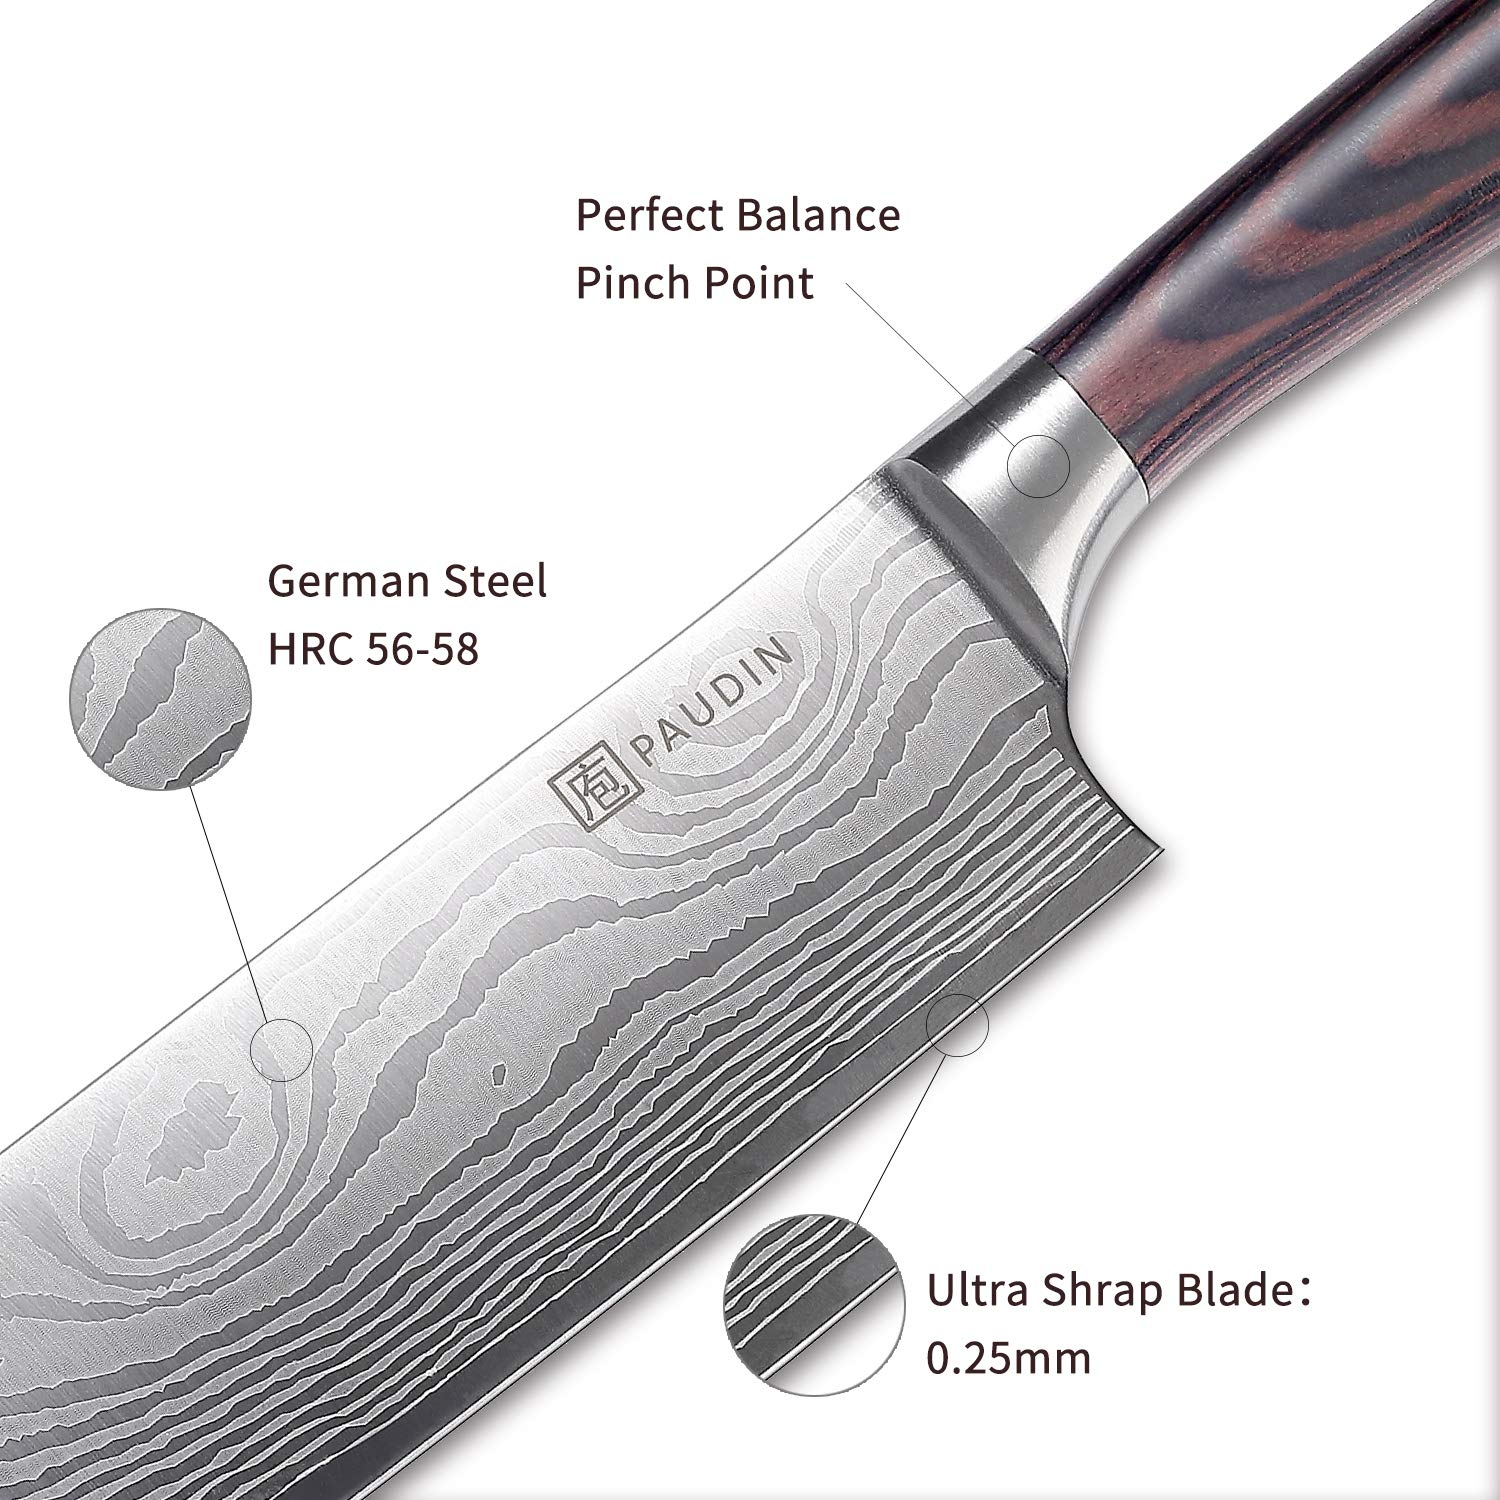 Cleaver Knife - PAUDIN 7 inch Chinese Vegetable Cleaver Kitchen Knife N6 German High Carbon Stainless Steel Meat Cleaver Knife by PAUDIN (Image #4)